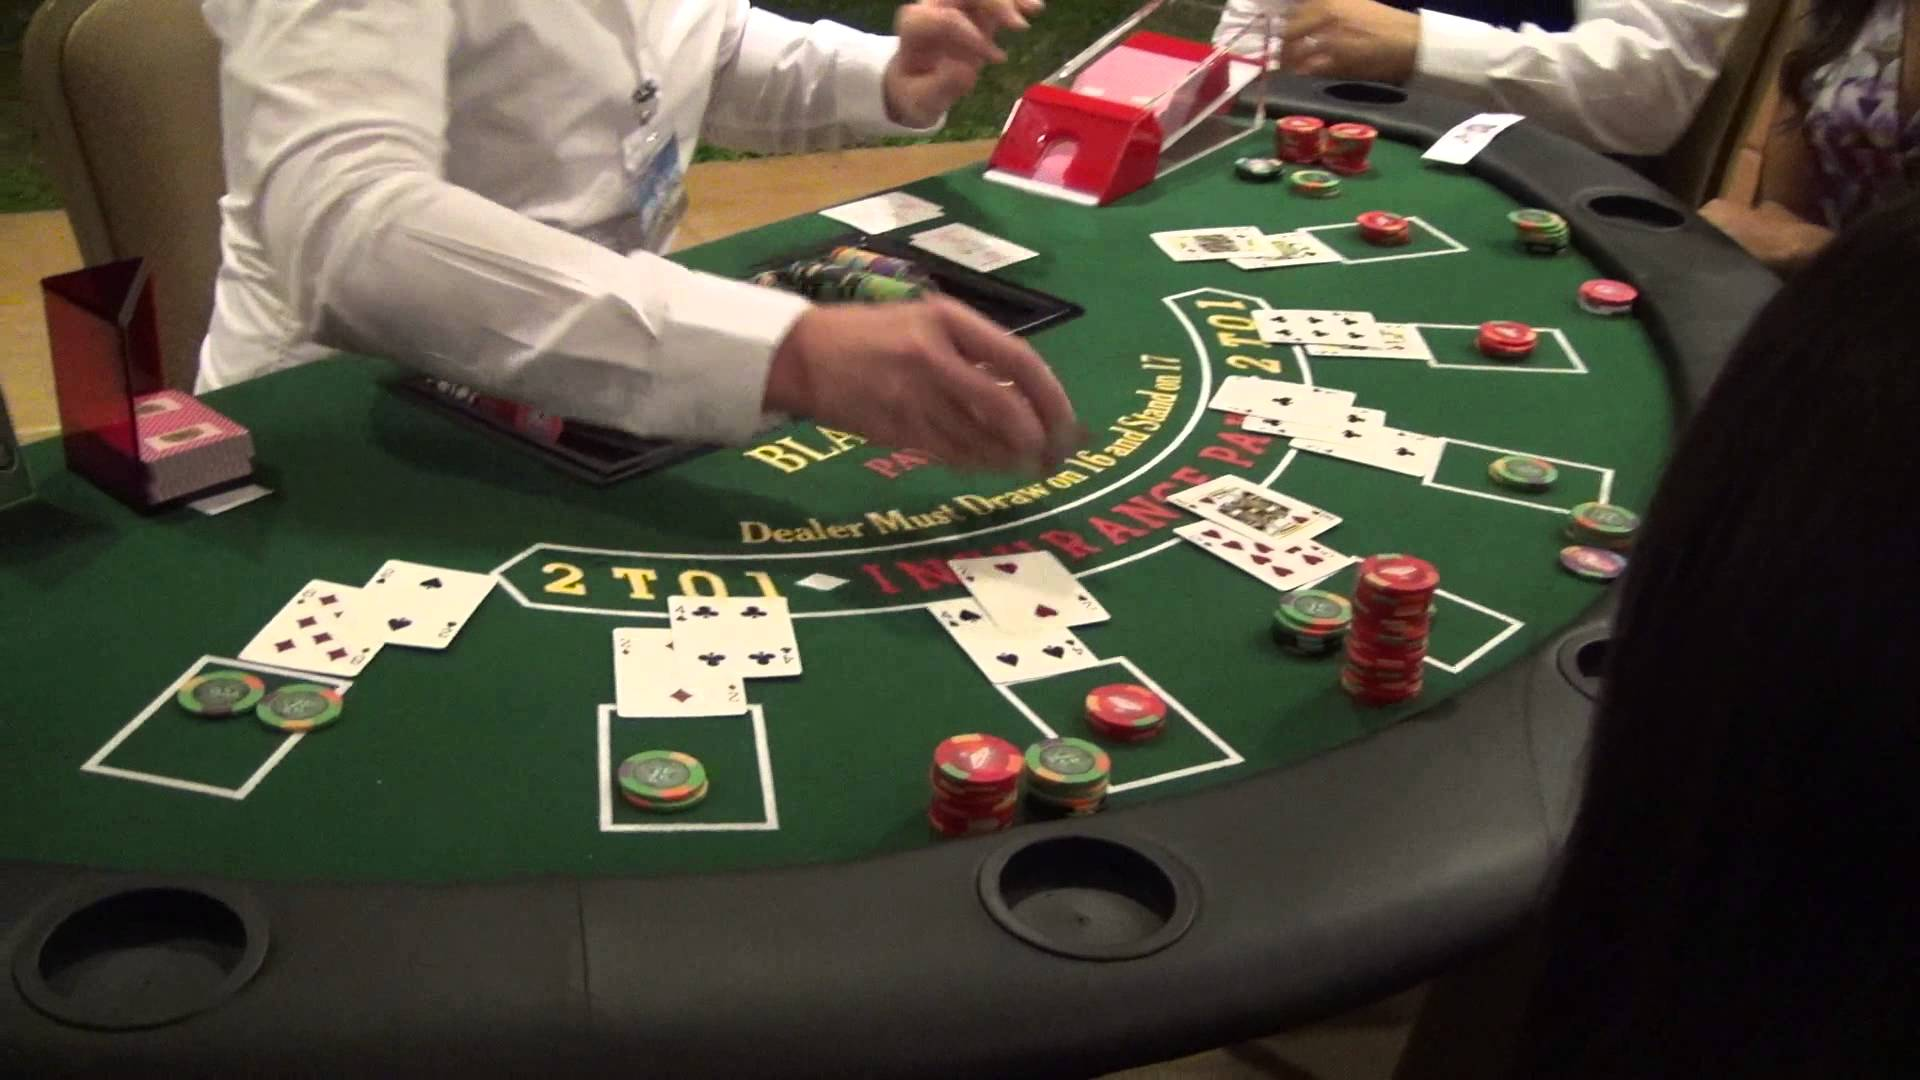 Appréciez la version virtuelle du jeu blackjack